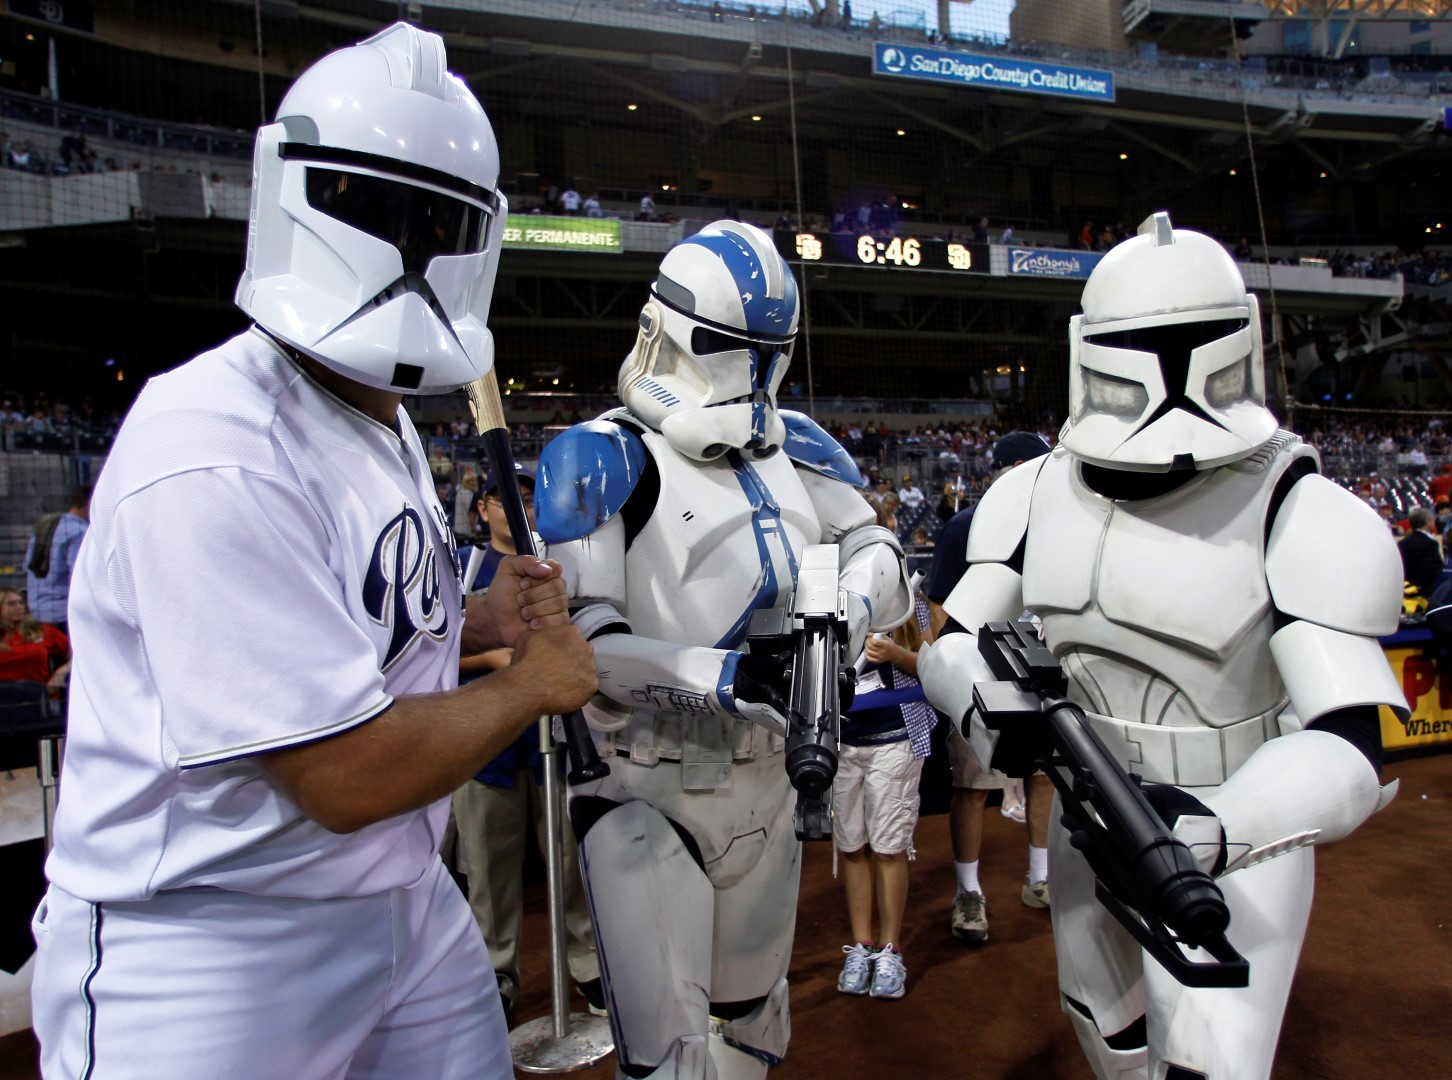 San Diego Padres relief pitcher Heath Bell (L) jokes around with Star Wars clone troopers during Star Wars night at the ball park prior to playing the Cincinnati Reds in their National League baseball game at Petco Park in San Diego, California September 24, 2010.   REUTERS/Mike Blake   (UNITED STATES - Tags: SPORT BASEBALL ENTERTAINMENT) - RTXSMJQ